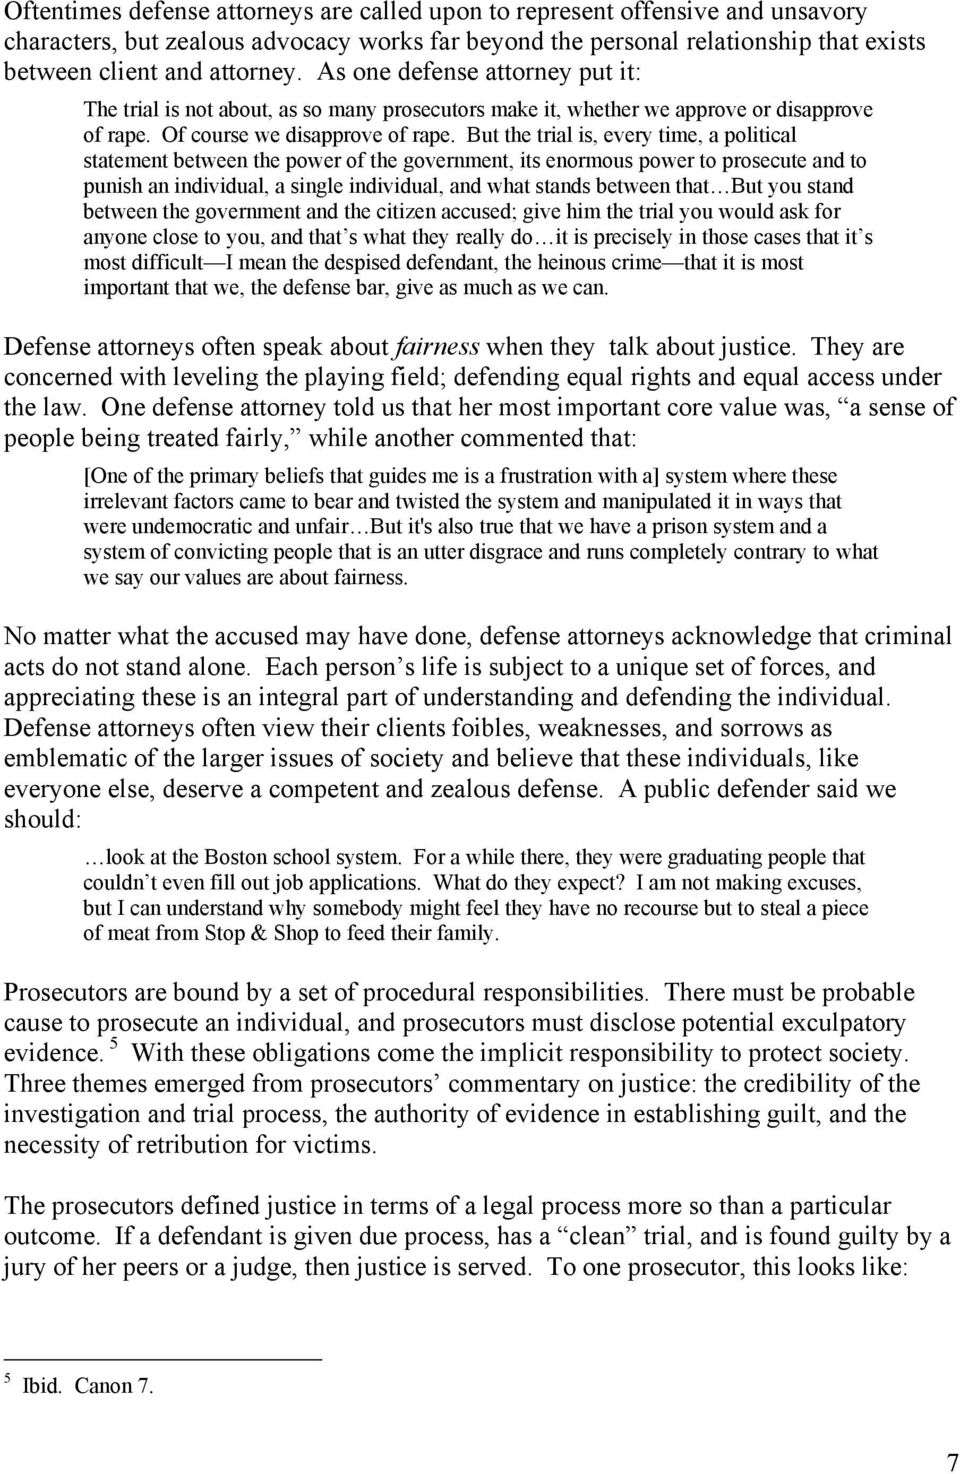 But the trial is, every time, a political statement between the power of the government, its enormous power to prosecute and to punish an individual, a single individual, and what stands between that